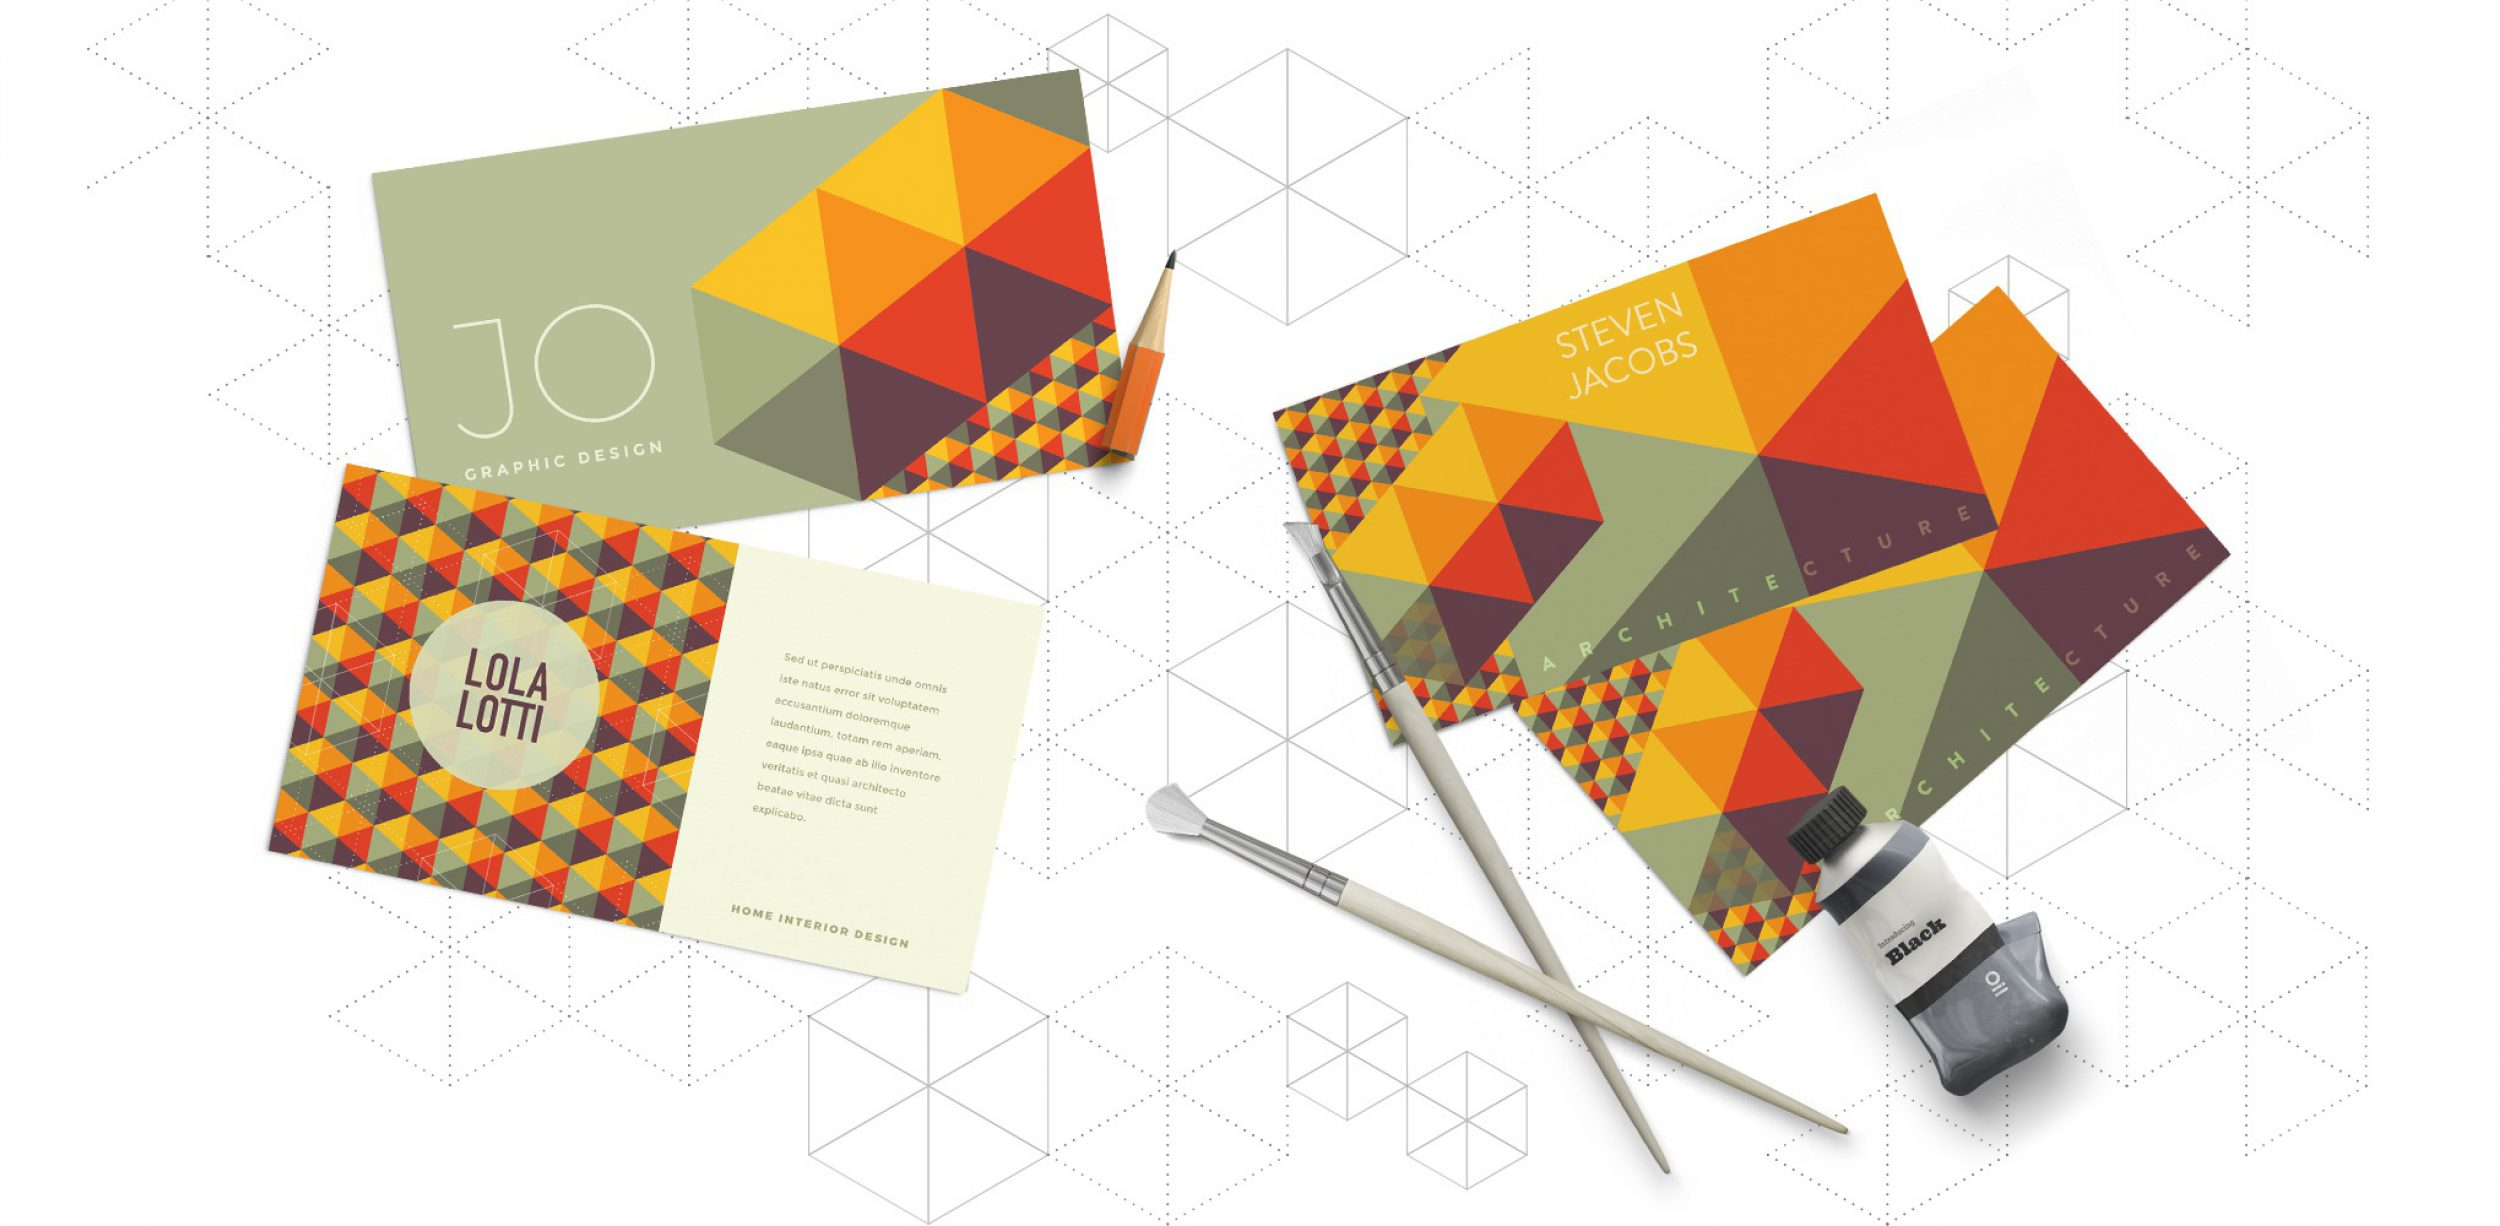 Business card examples using a cube pattern design